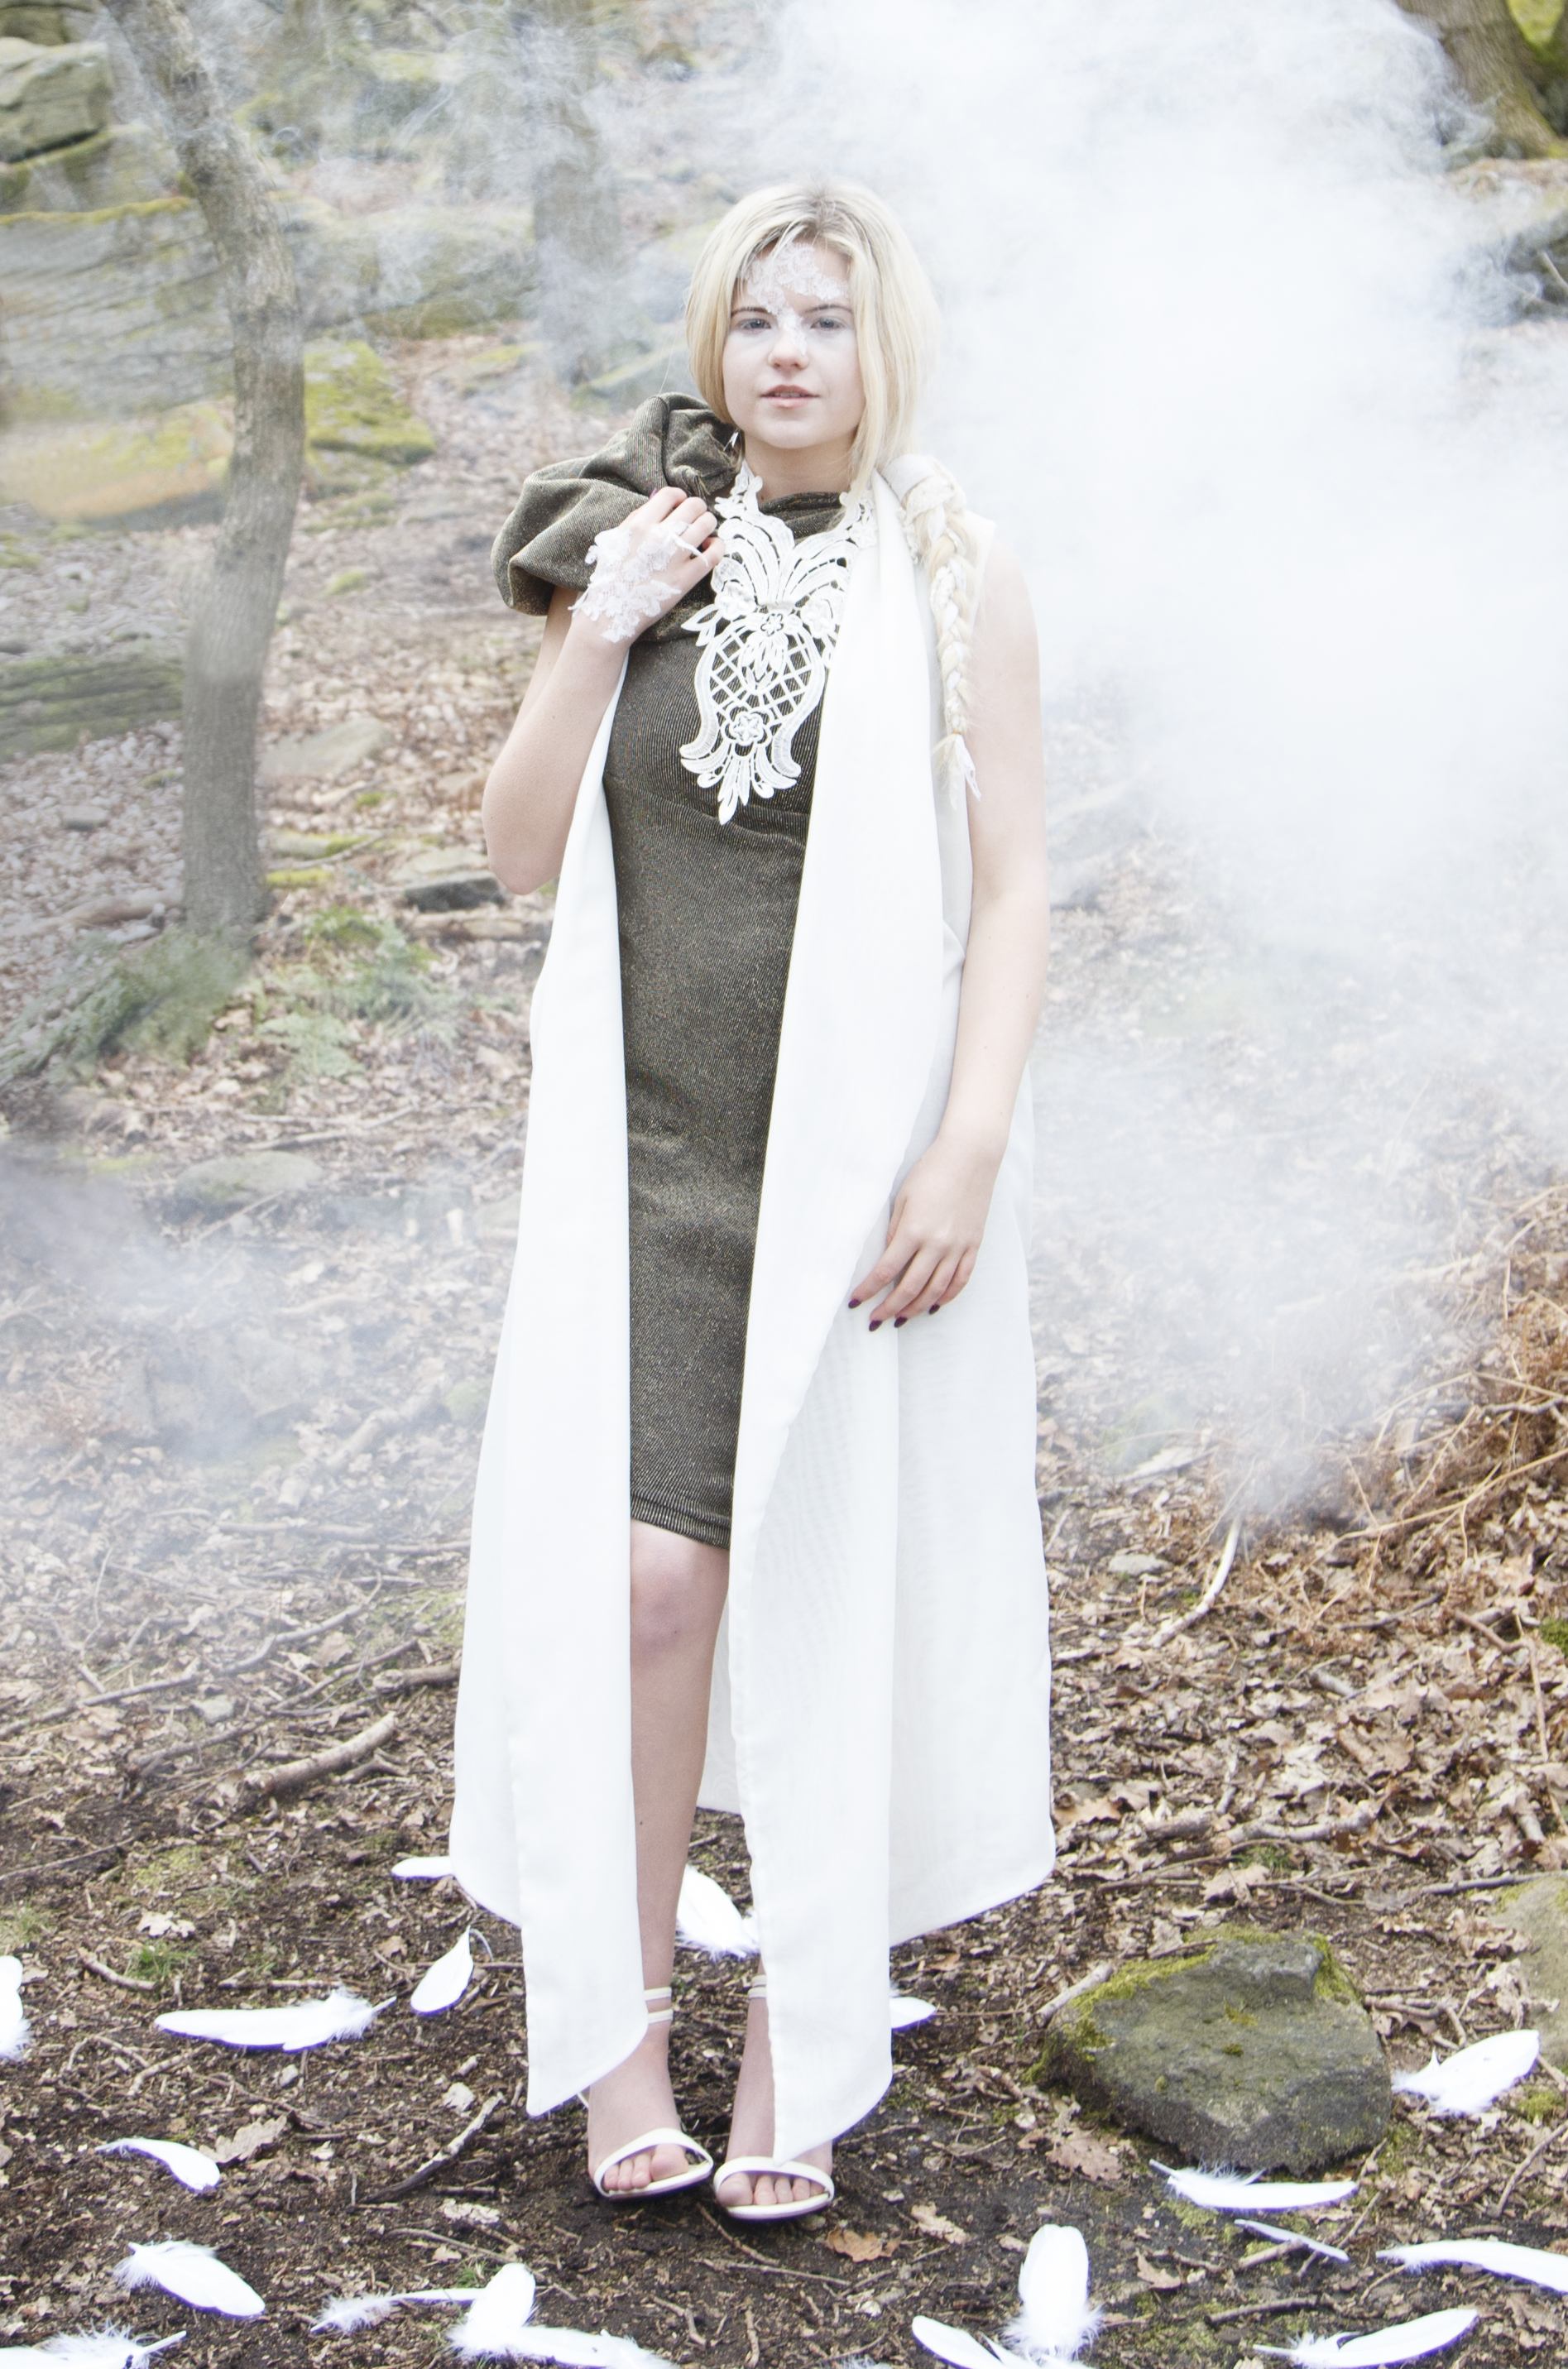 zaramia-ava-zaramiaava-leeds-fashion-designer-ethical-sustainable-smoke-versatile-drape-wrap-gold-cowl-white-dress-styling-location-womenswear-models-photoshoot-location-lace-3